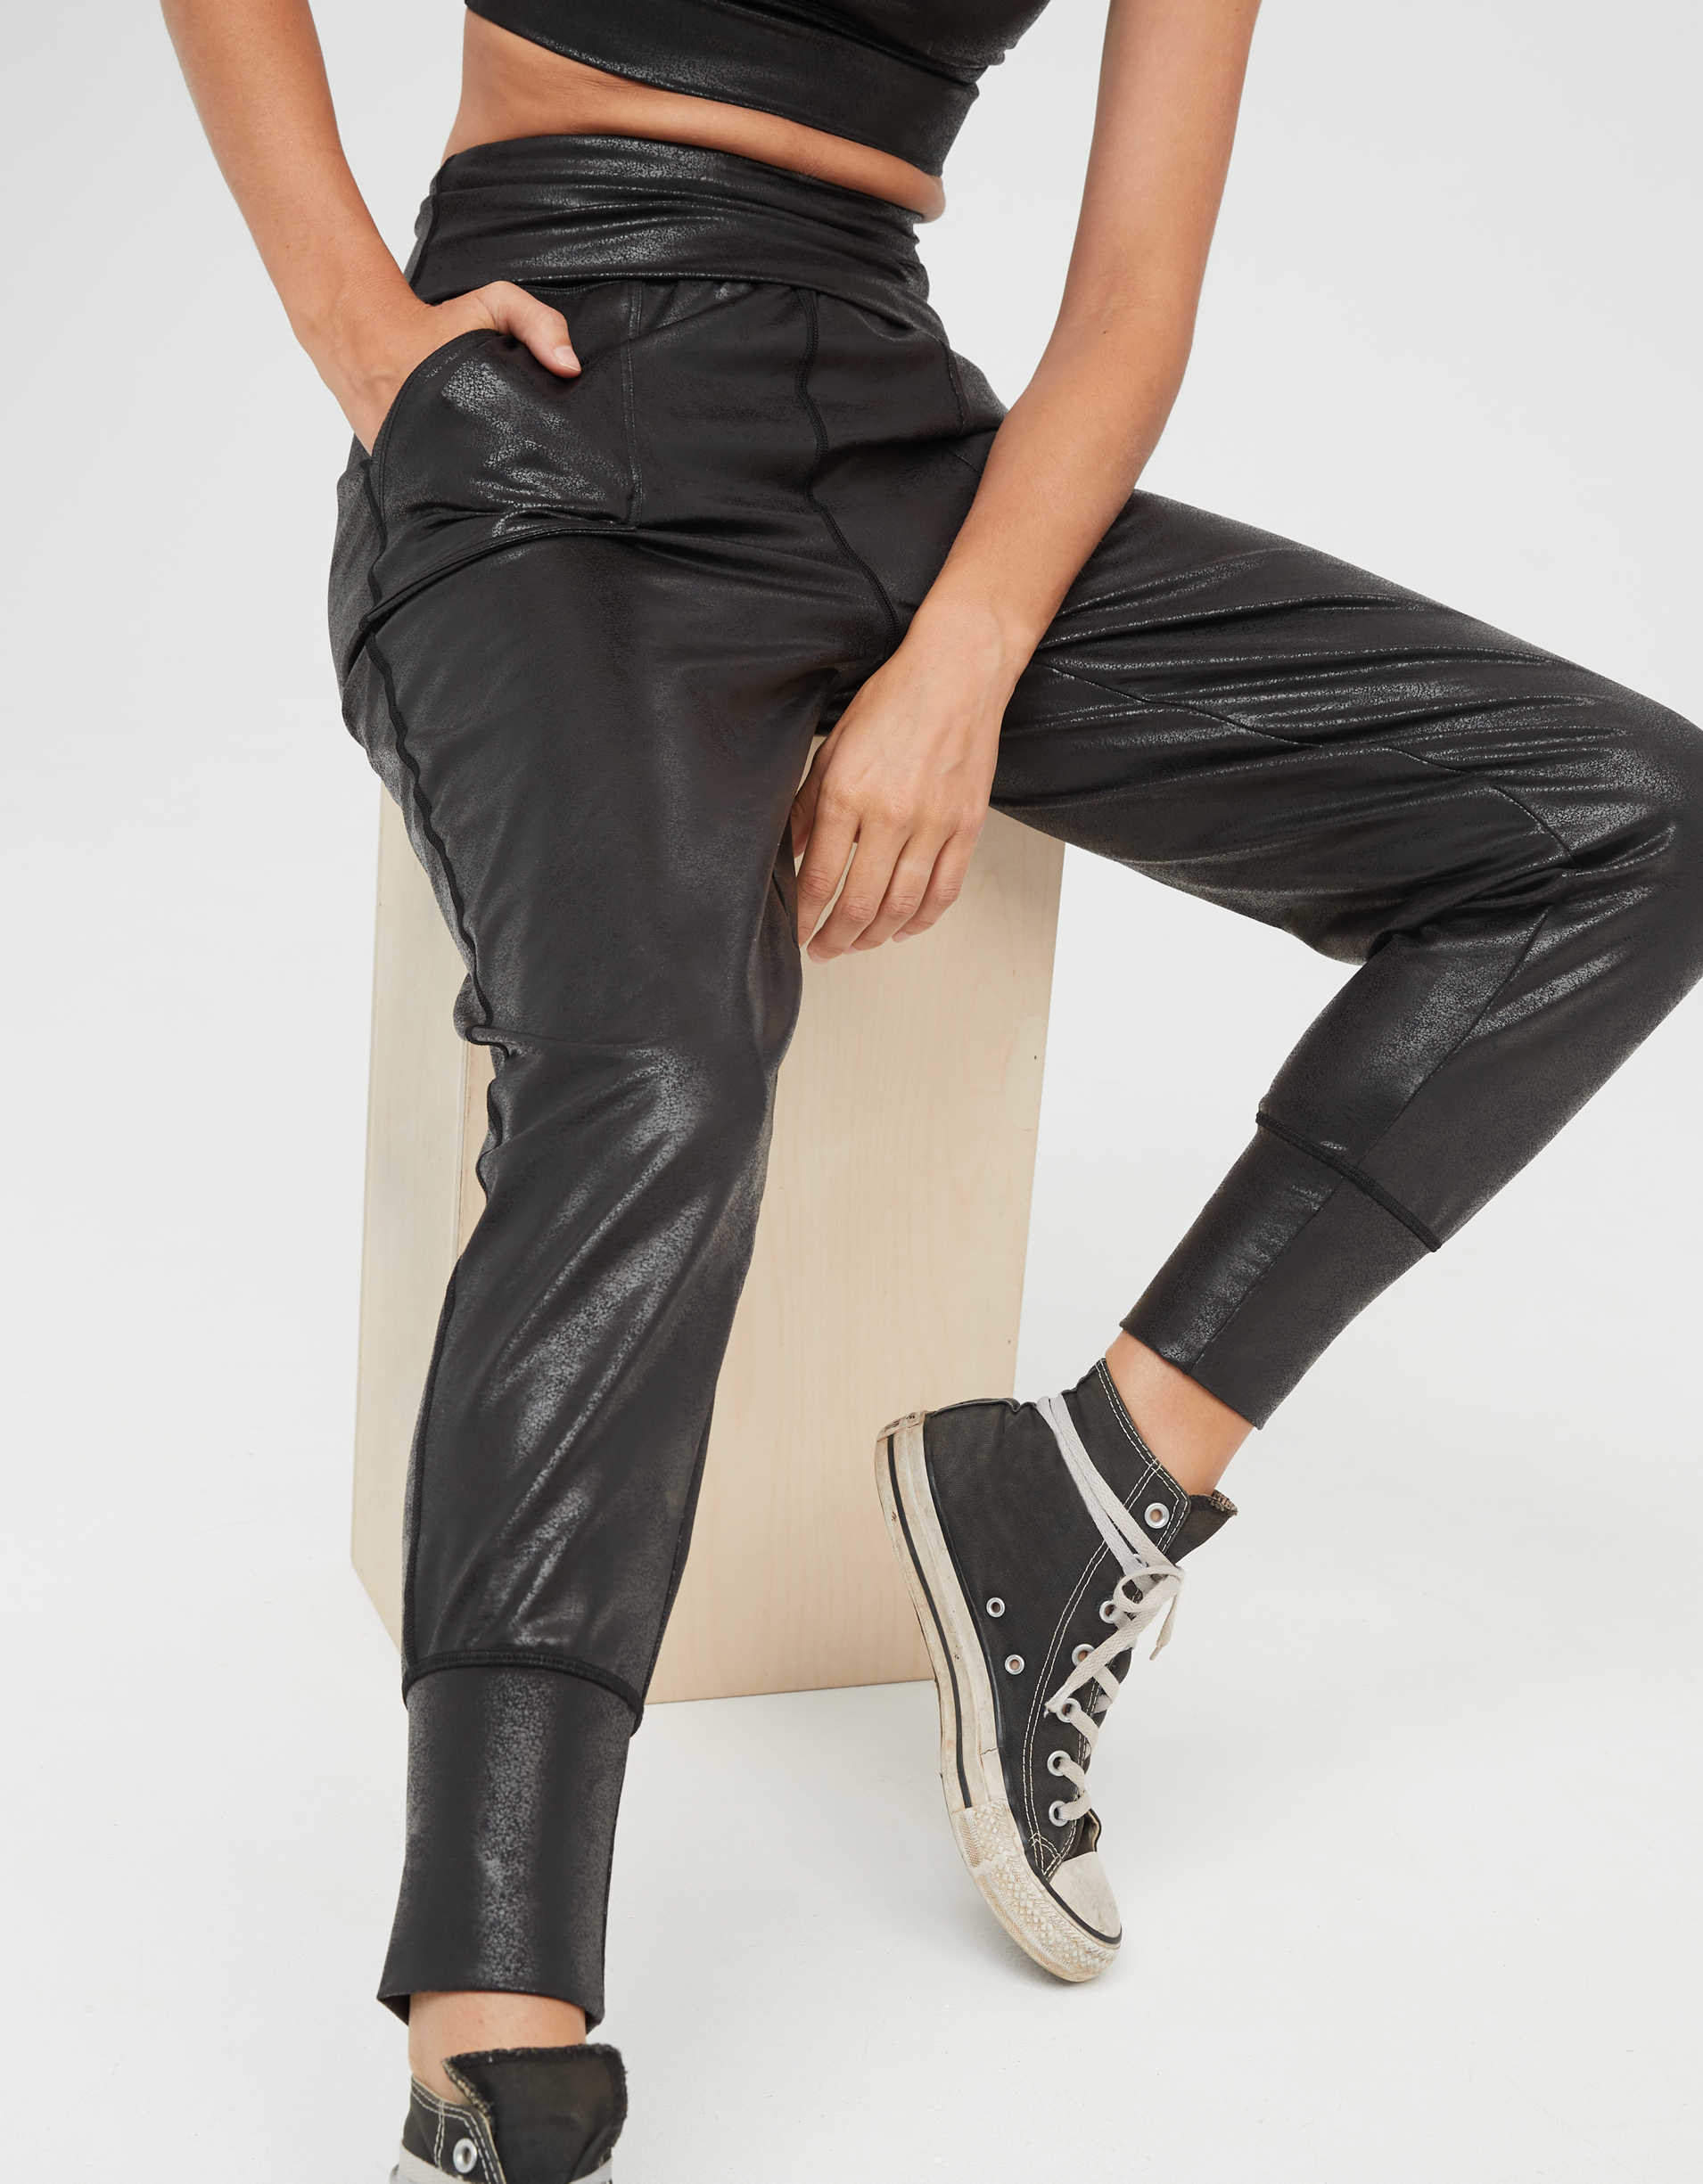 Model wearing the jogger with a sheen to the fabric, foldover waistband, ankle cuffs and pockets